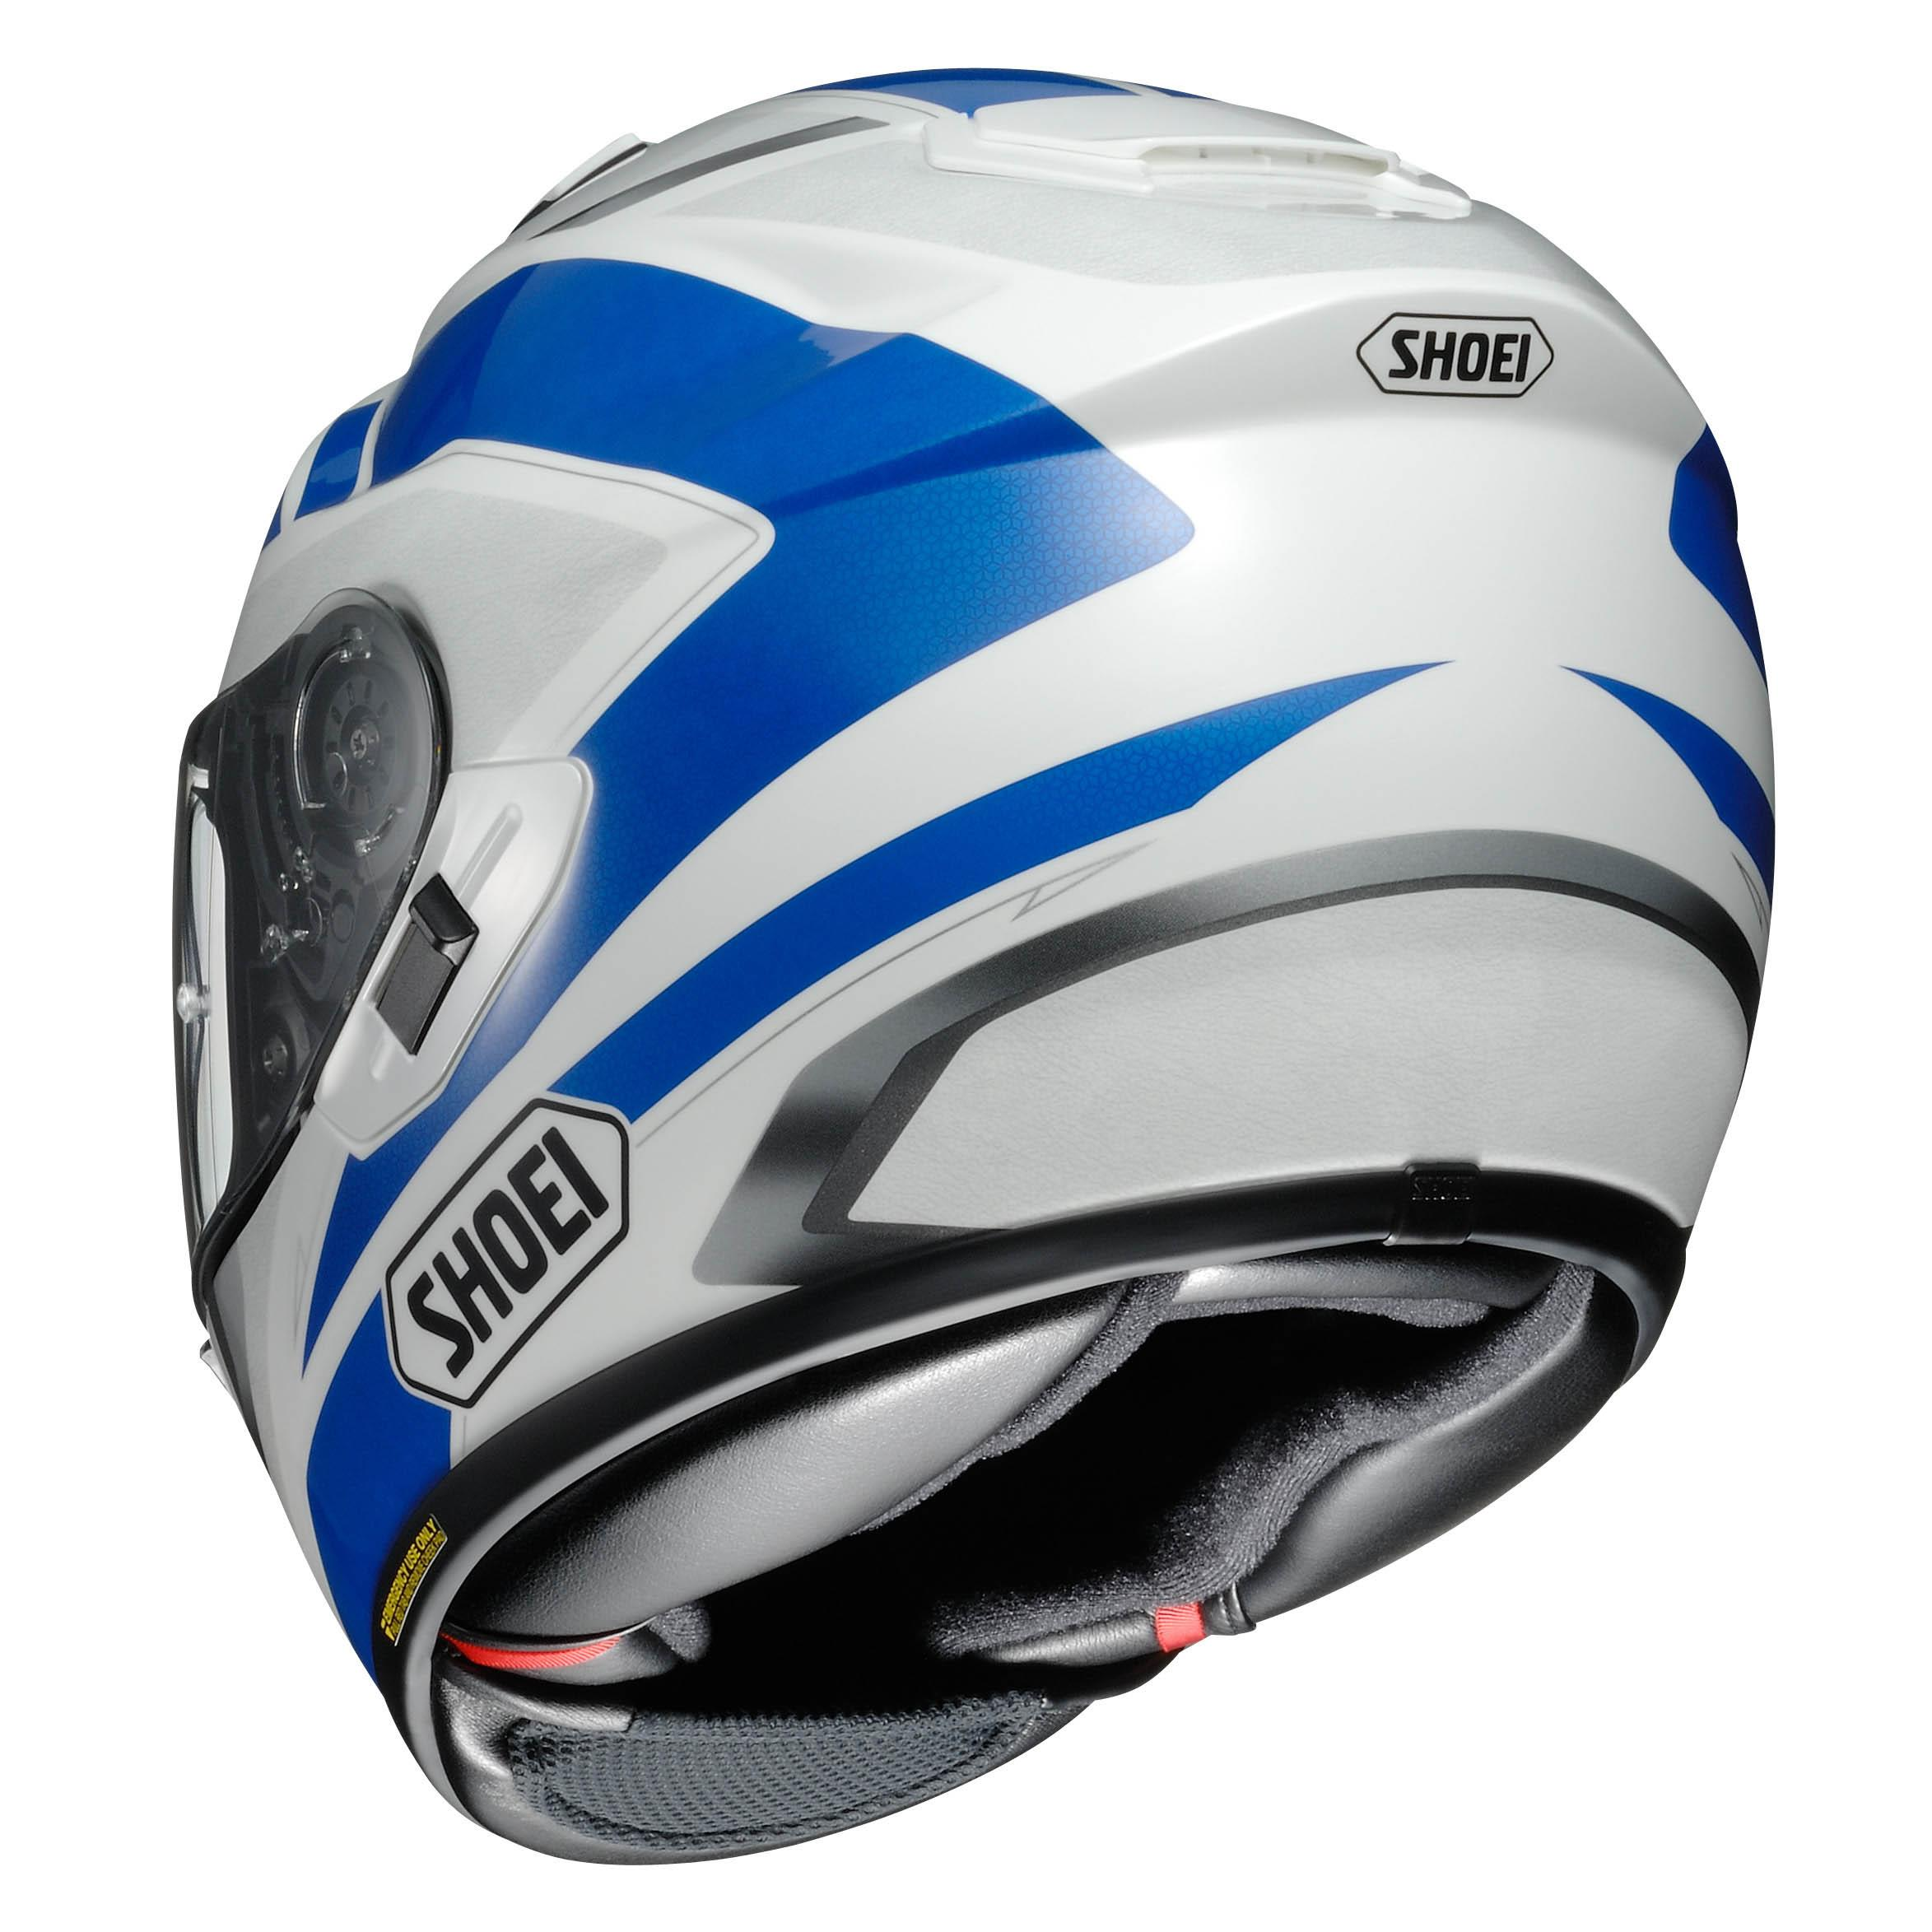 shoei gt air swayer tc 2 helmet blue white online motorcycle accessories australia scm. Black Bedroom Furniture Sets. Home Design Ideas